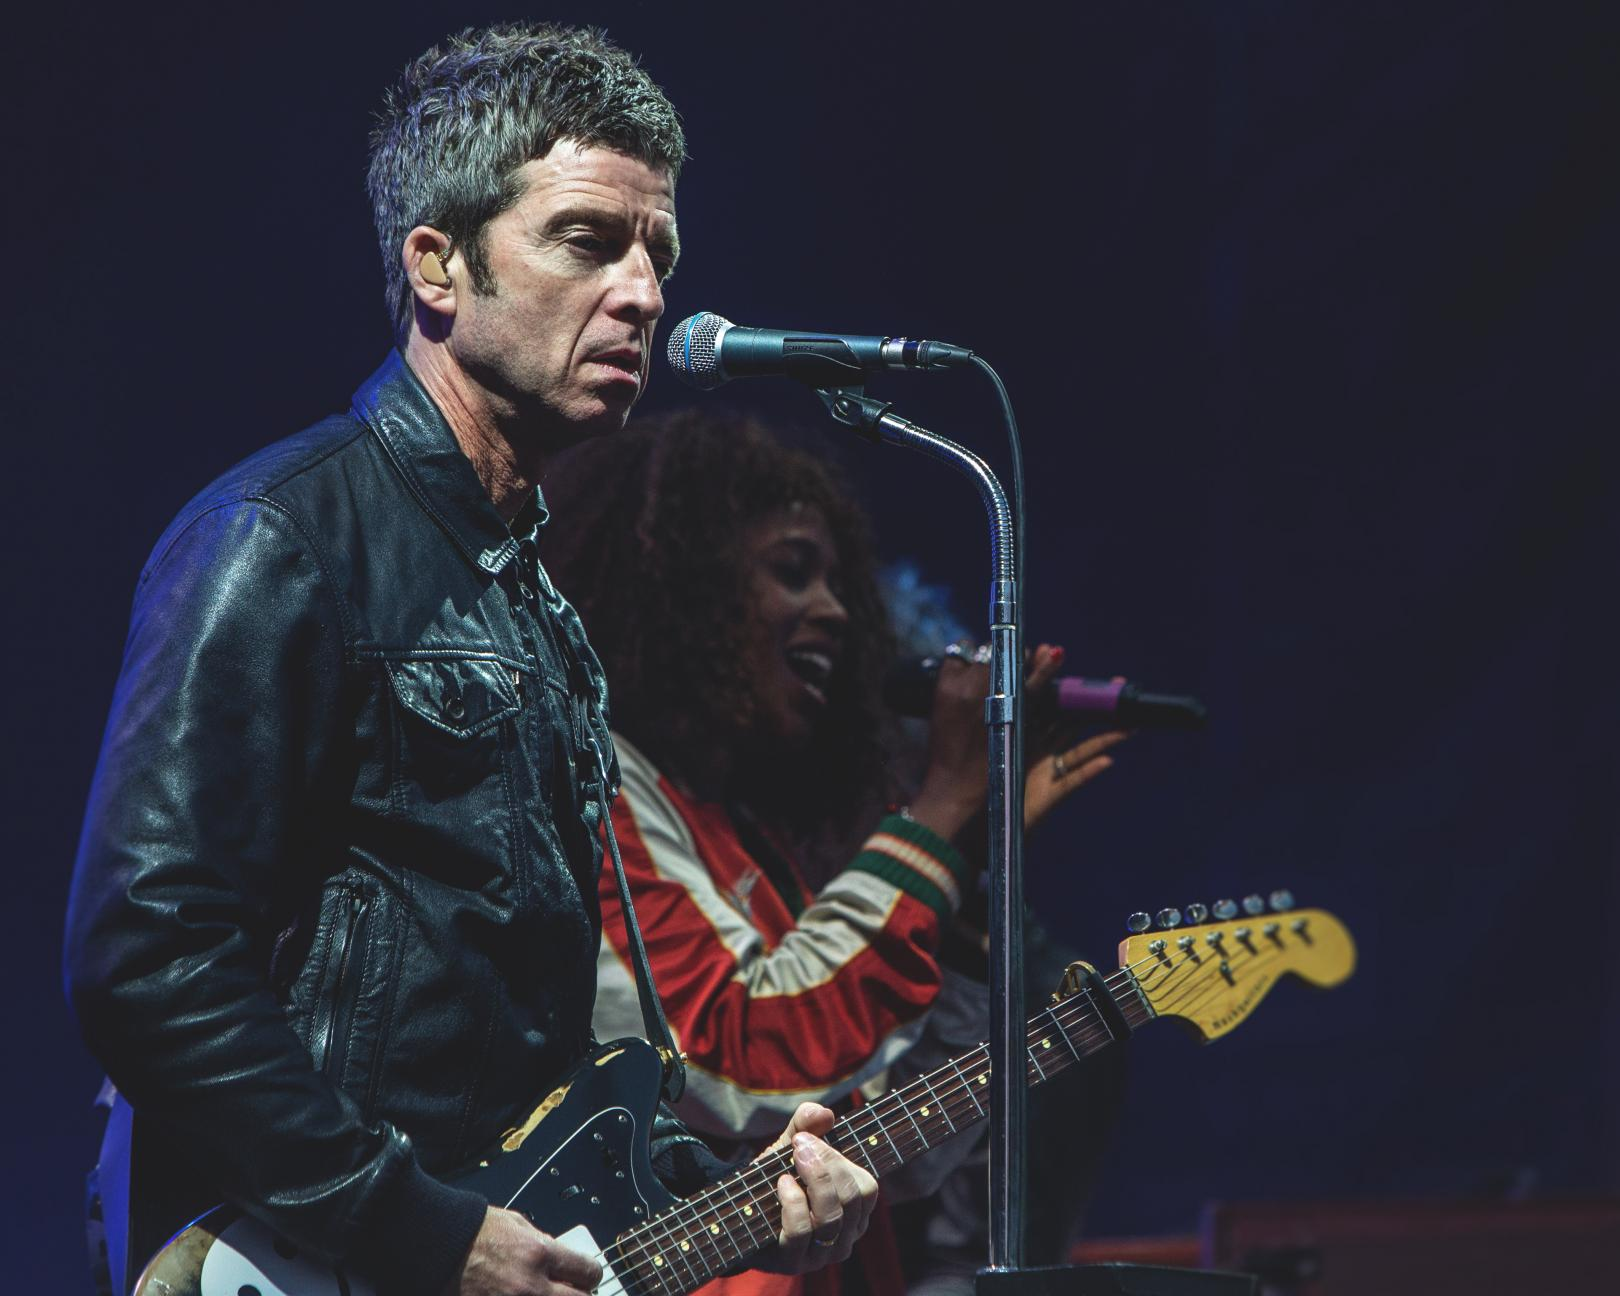 Norwich Music Photography - Noel Gallagher